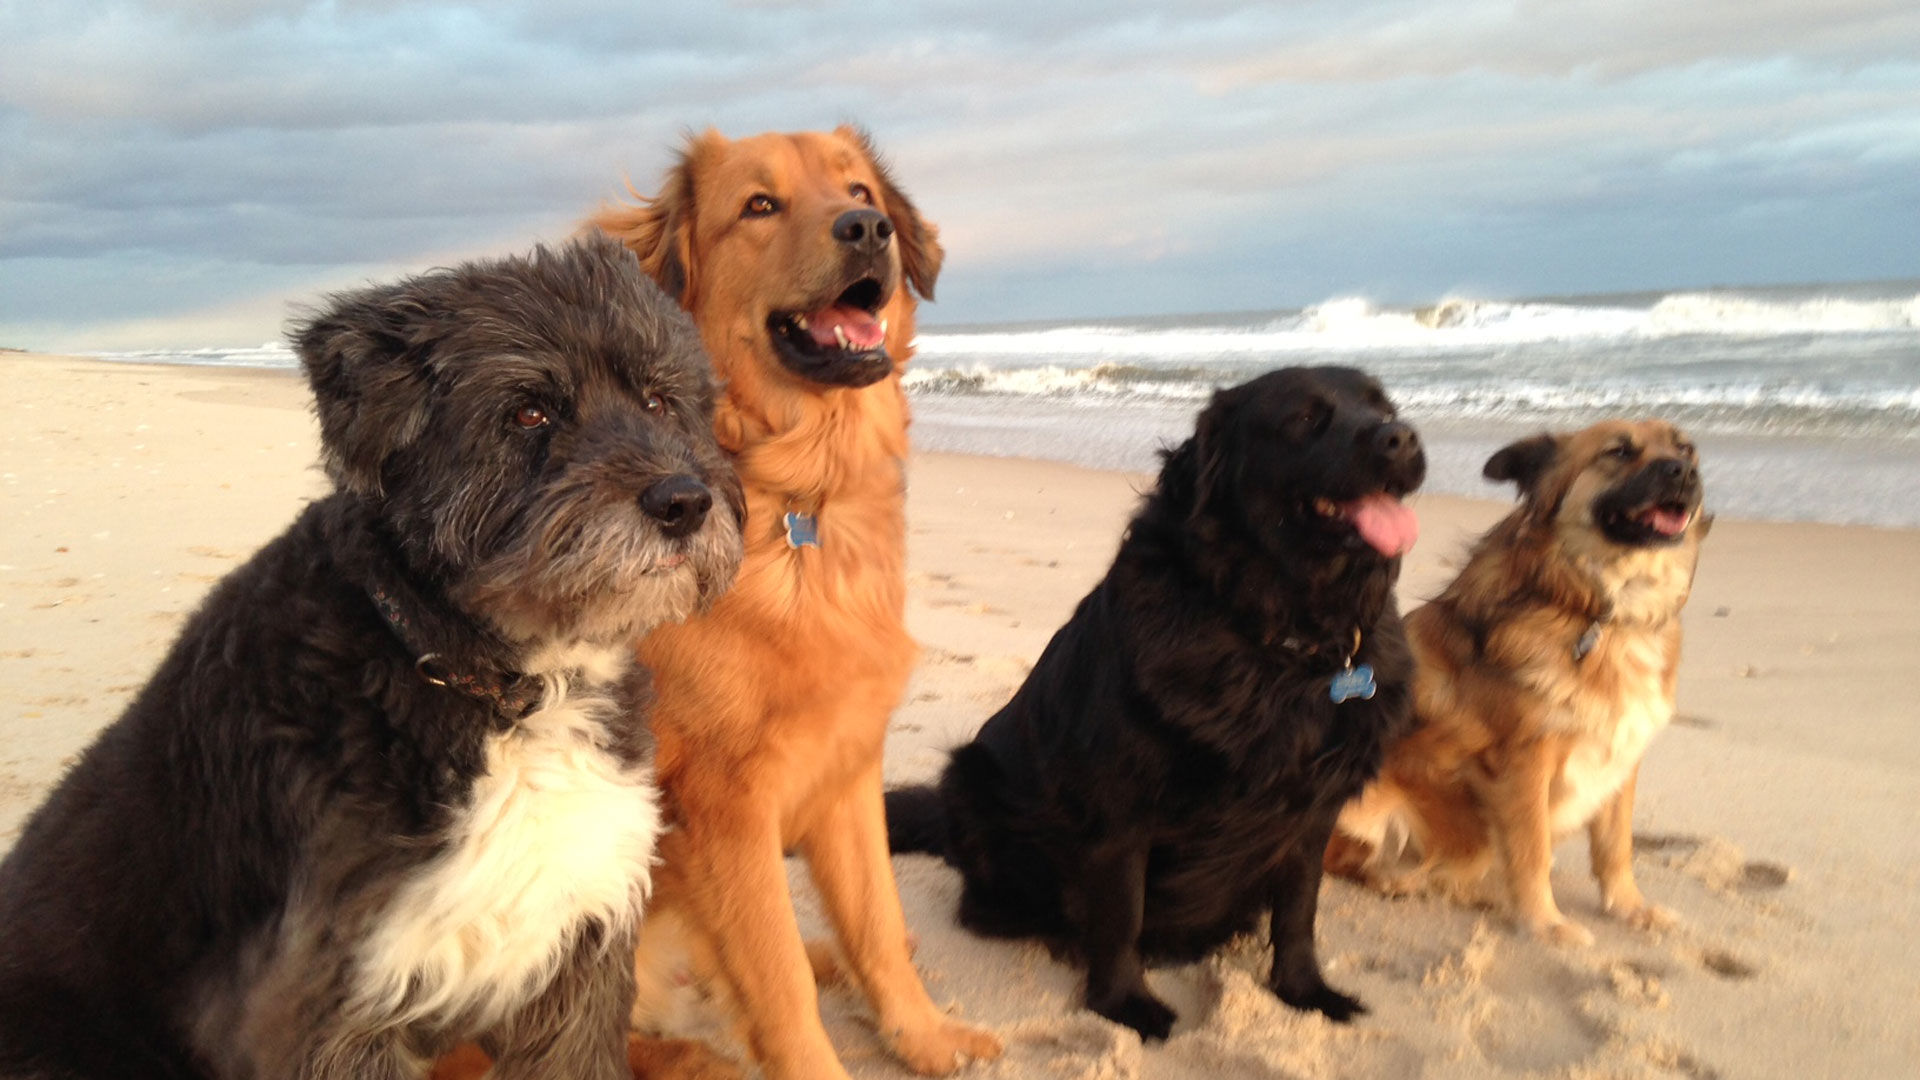 My 4 dogs on beach 15